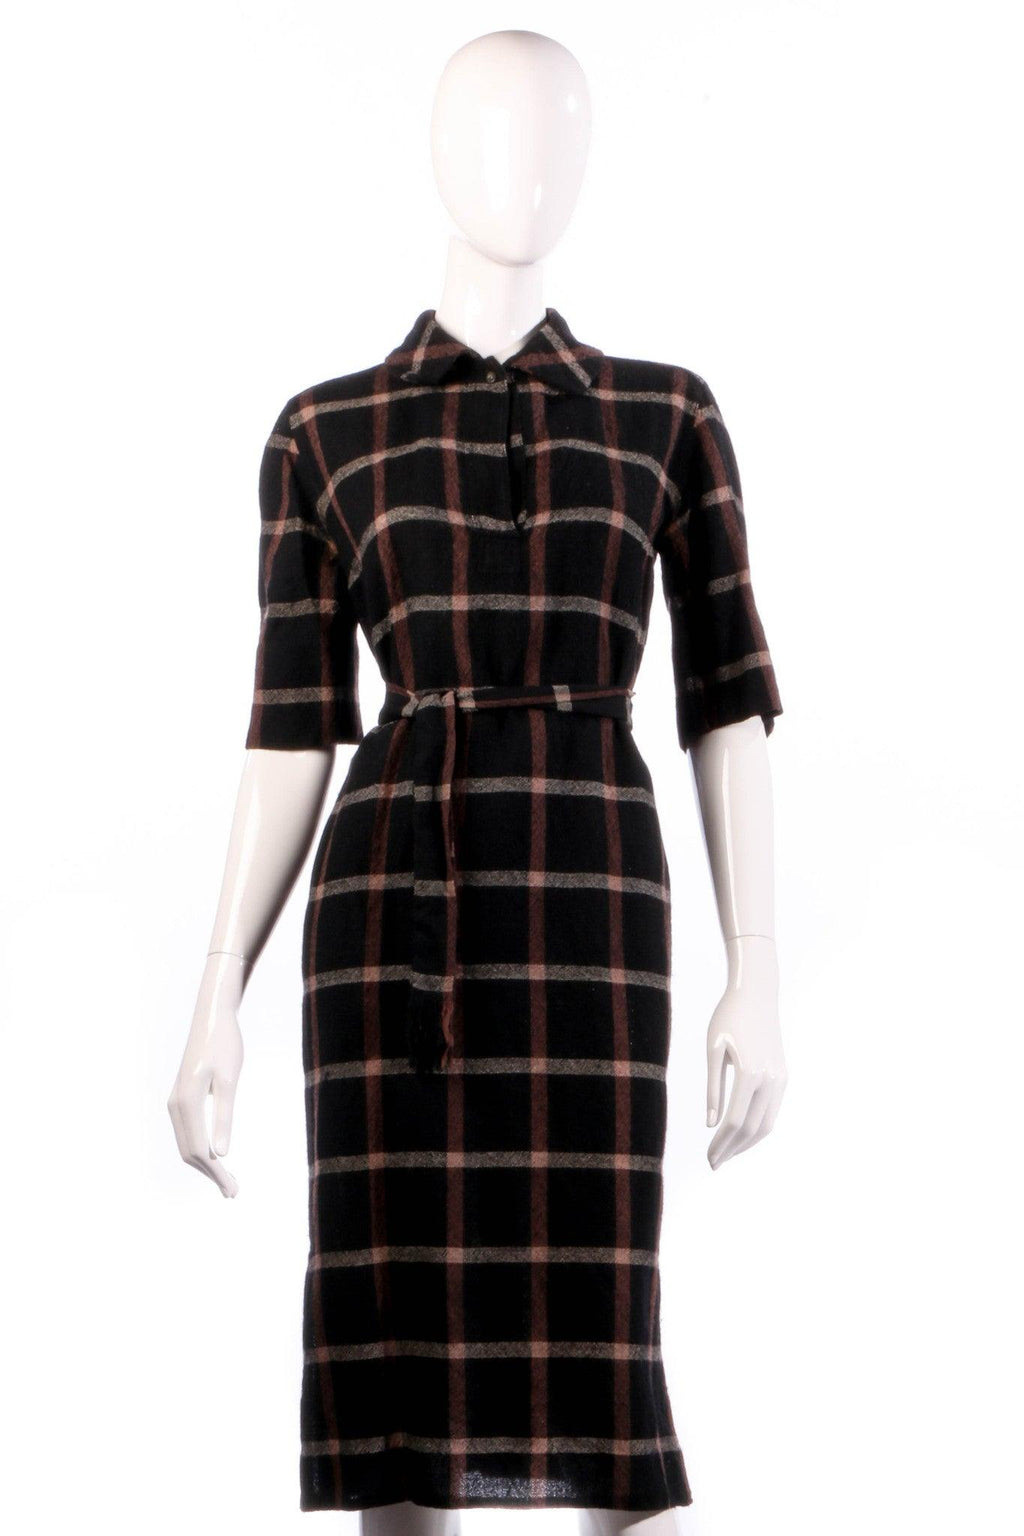 Donald Davies black and red checked dress size 14